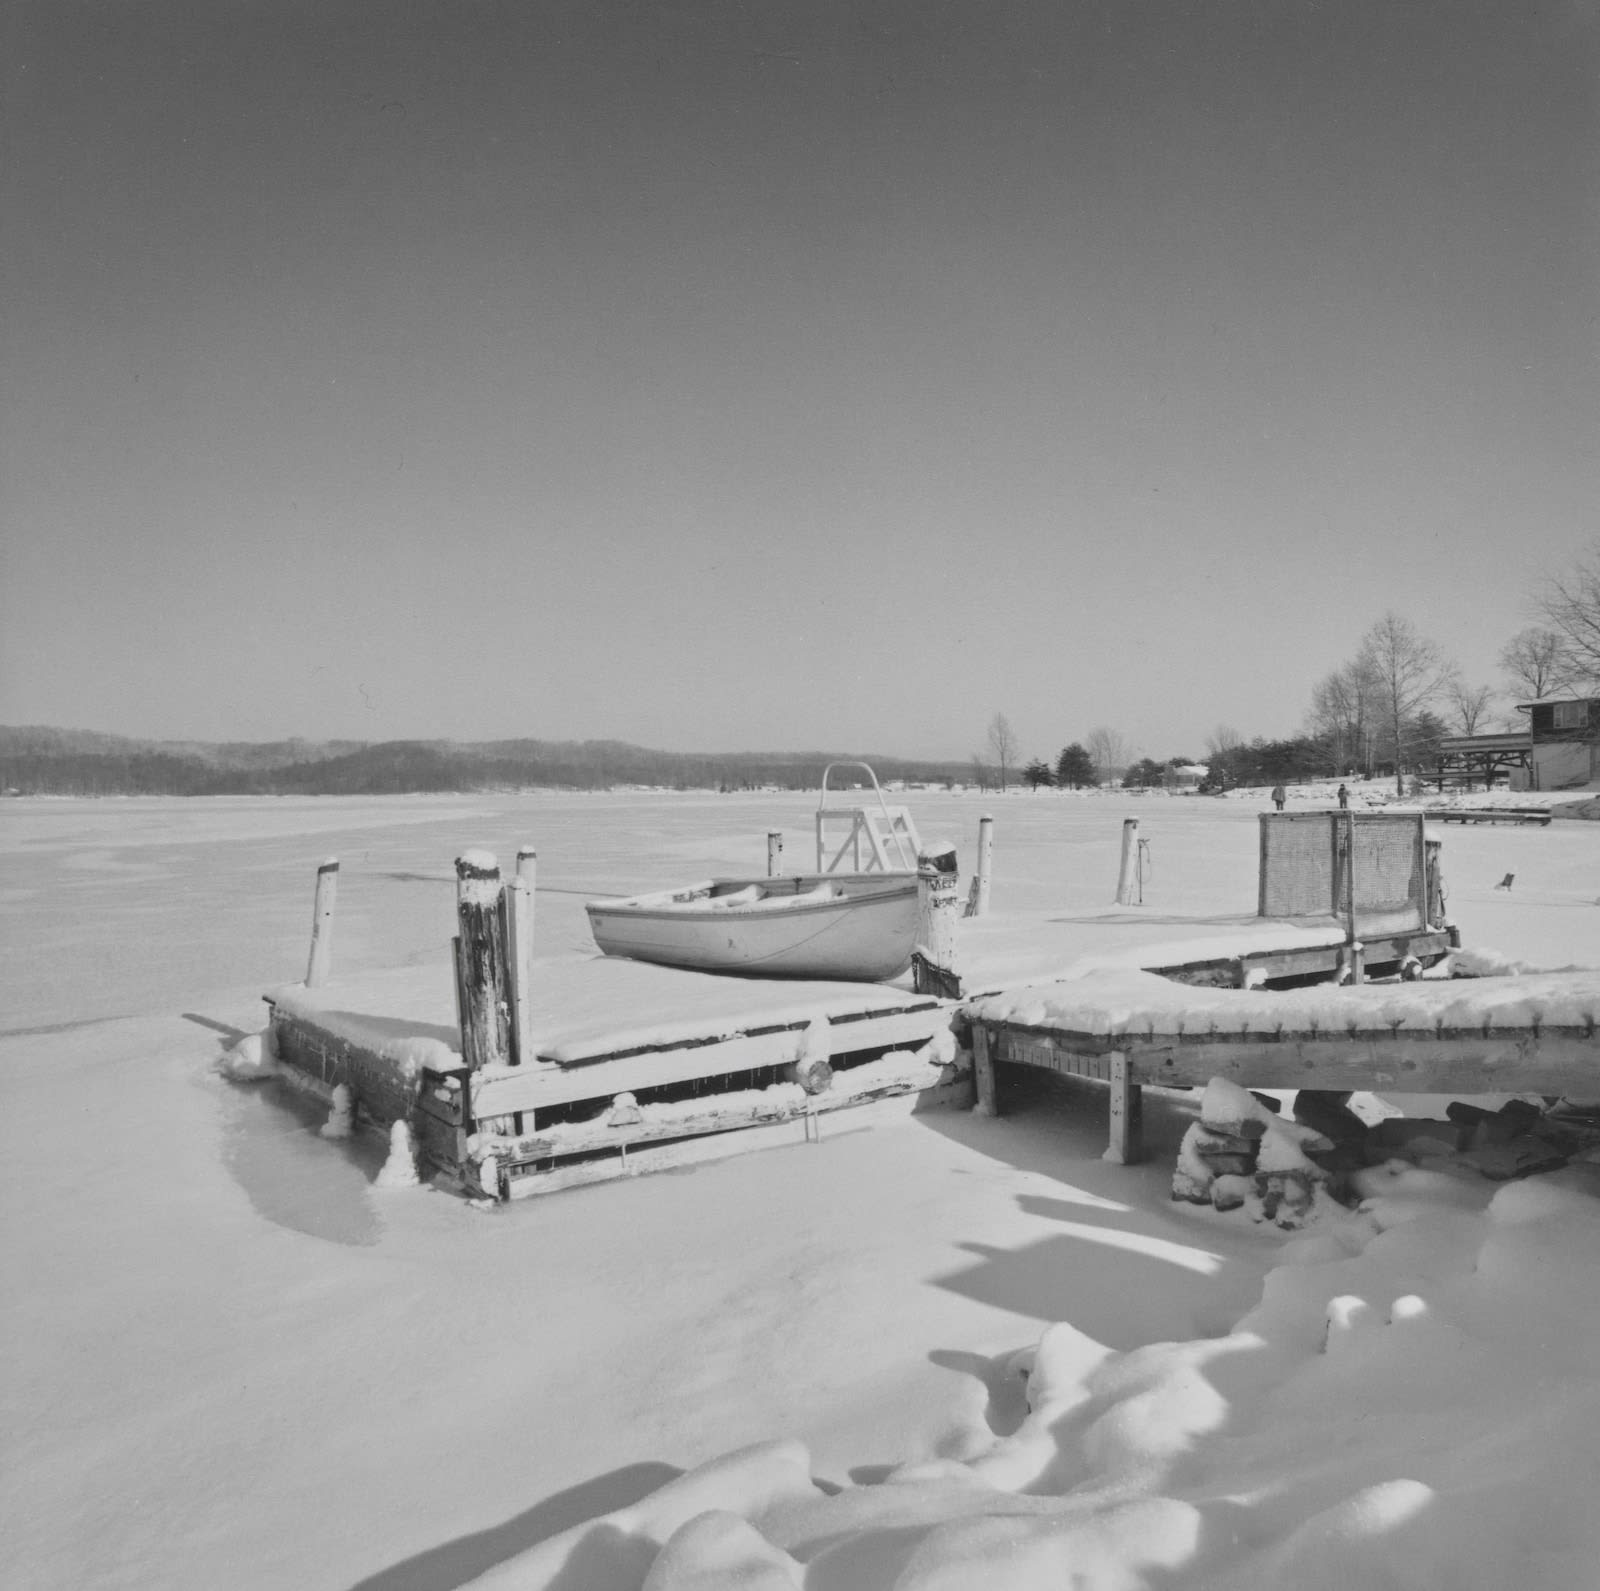 Steven Rifkin, Untitled, Lake Lemon, IN, 1977